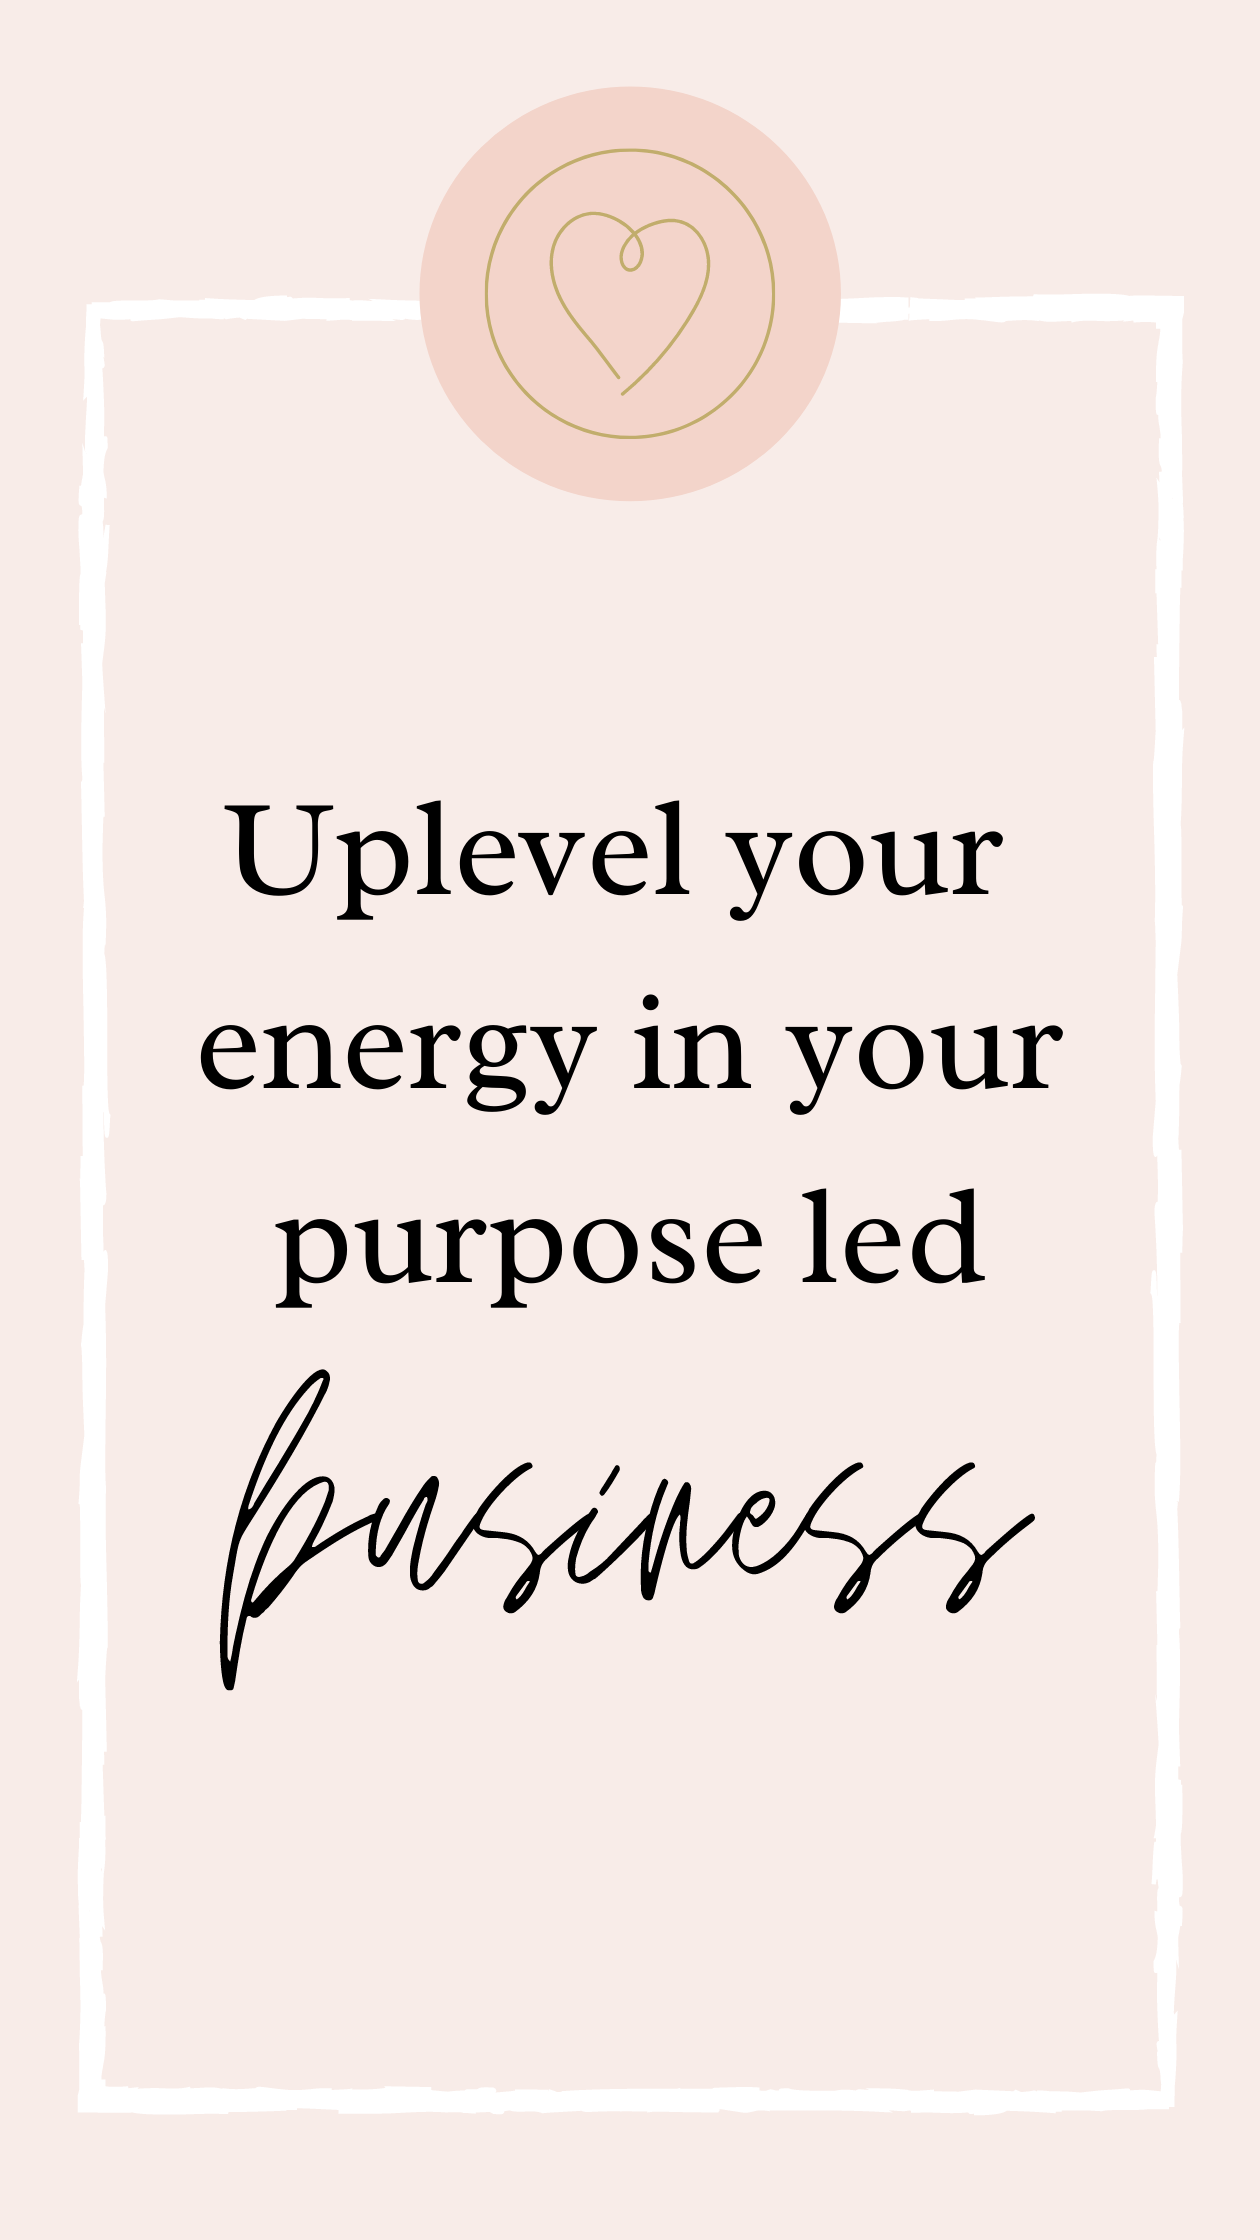 uplevel your energy in your purpose led business